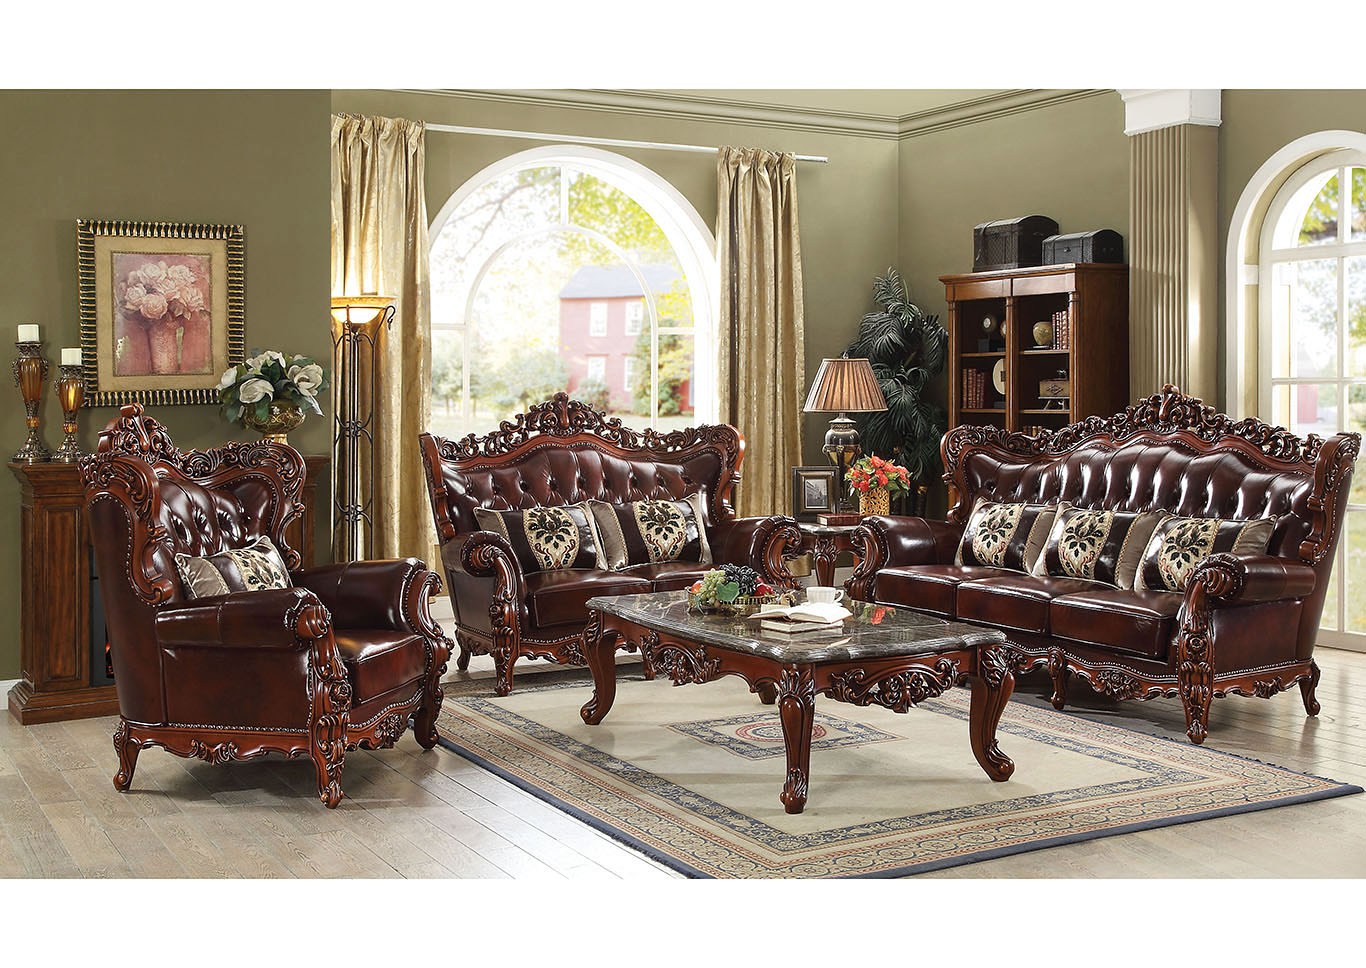 Groovy Sans Midman Furniture Eustoma Brown Match Sofa And Loveseat Andrewgaddart Wooden Chair Designs For Living Room Andrewgaddartcom